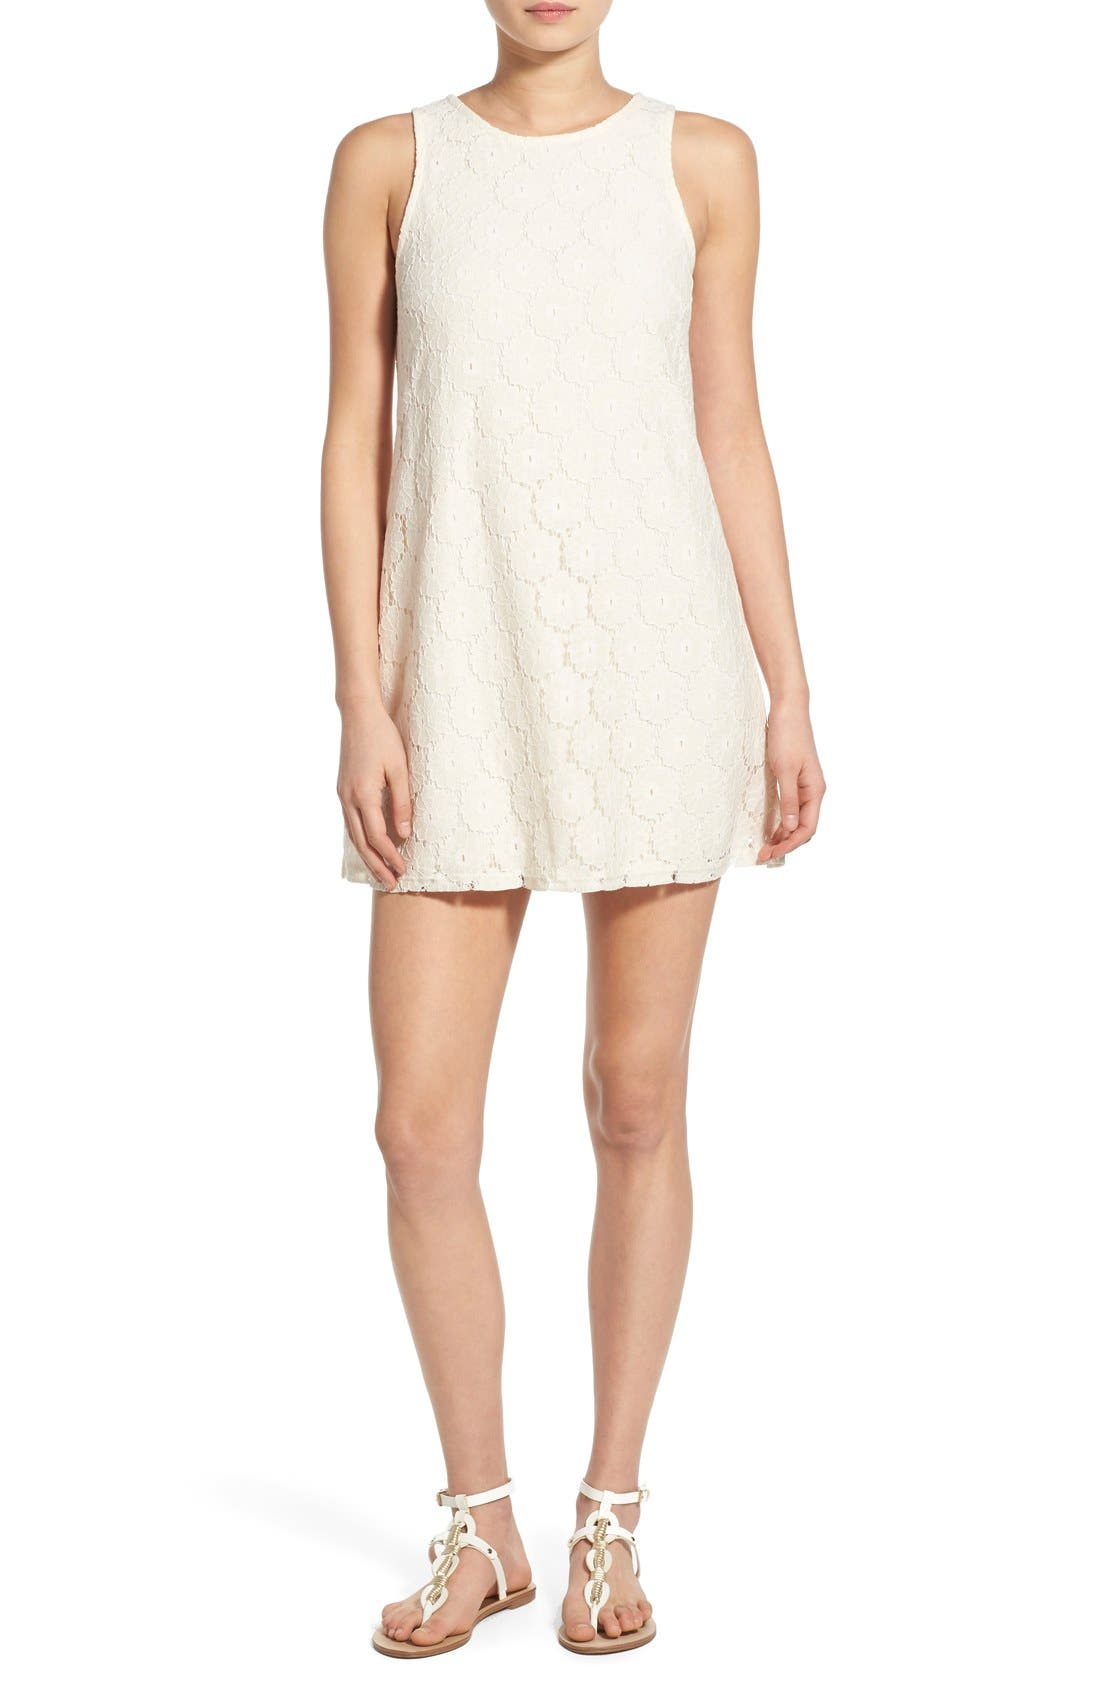 Alternate Image 1 Selected - Speechless 'Daisy' Lace Sleeveless Shift Dress